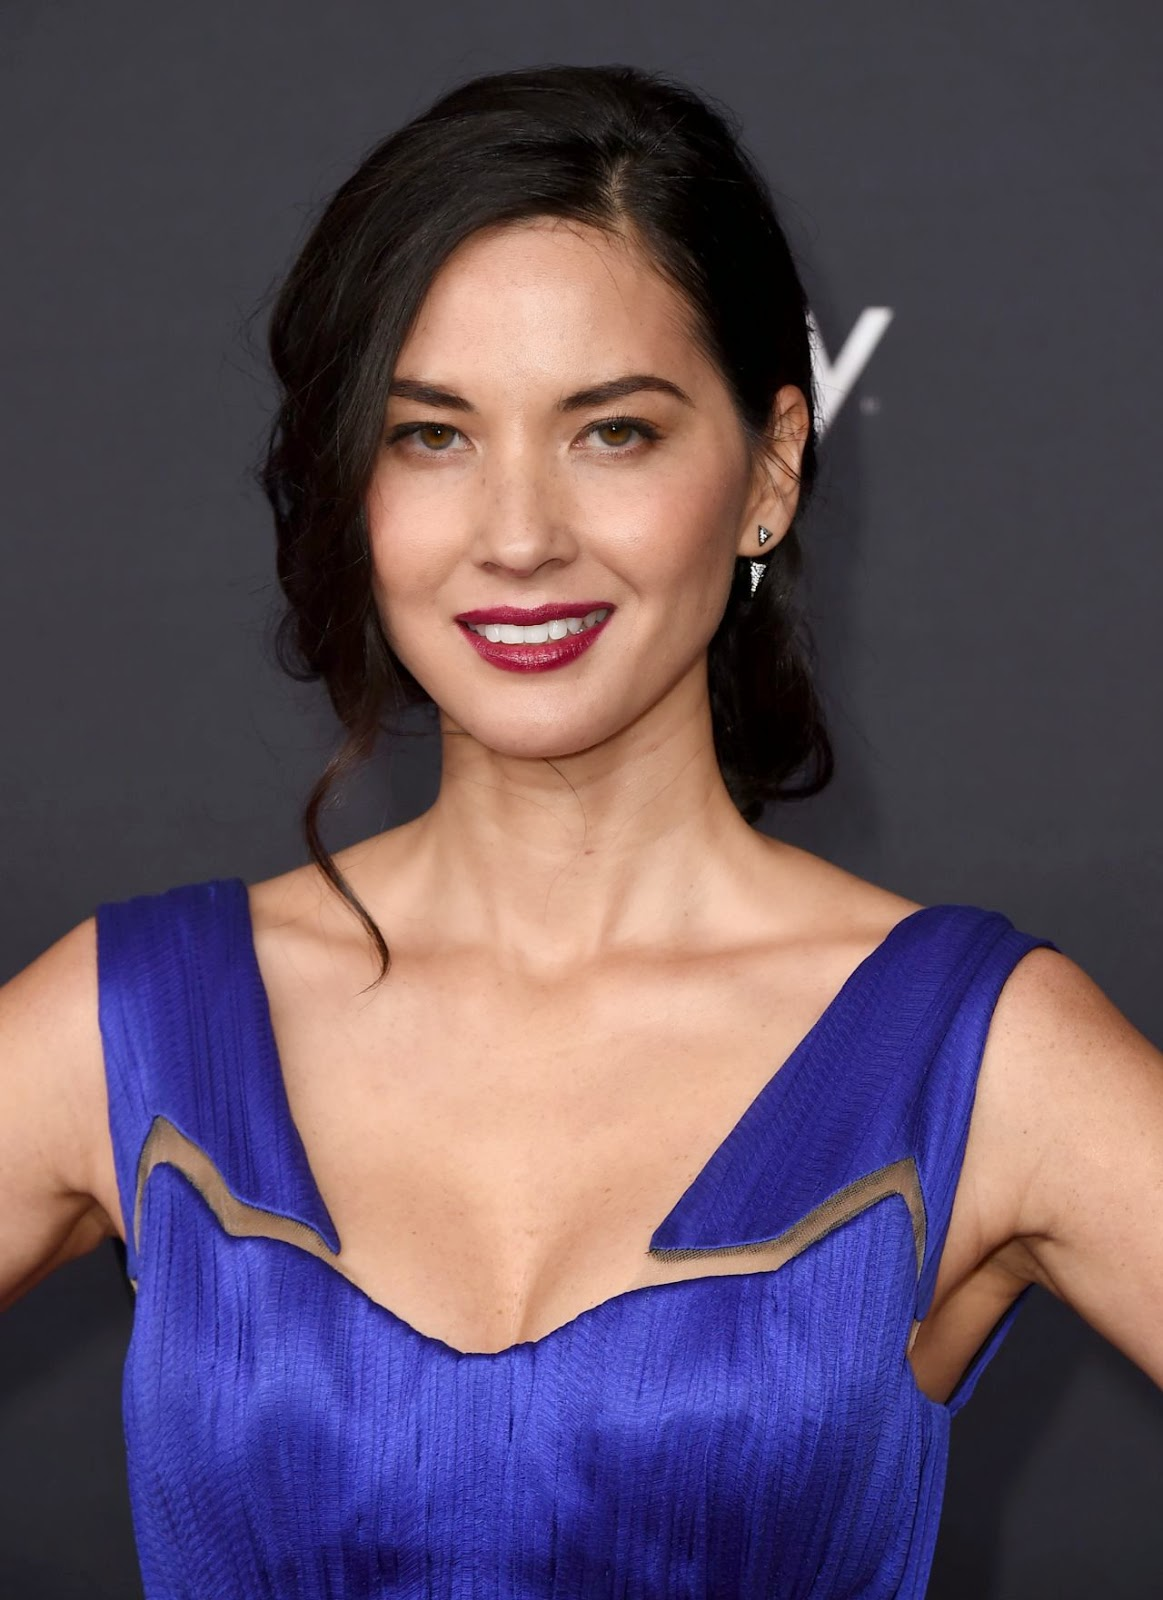 Olivia Munn in a stylish blue gown at the 2015 NFL Honors in Phoenix